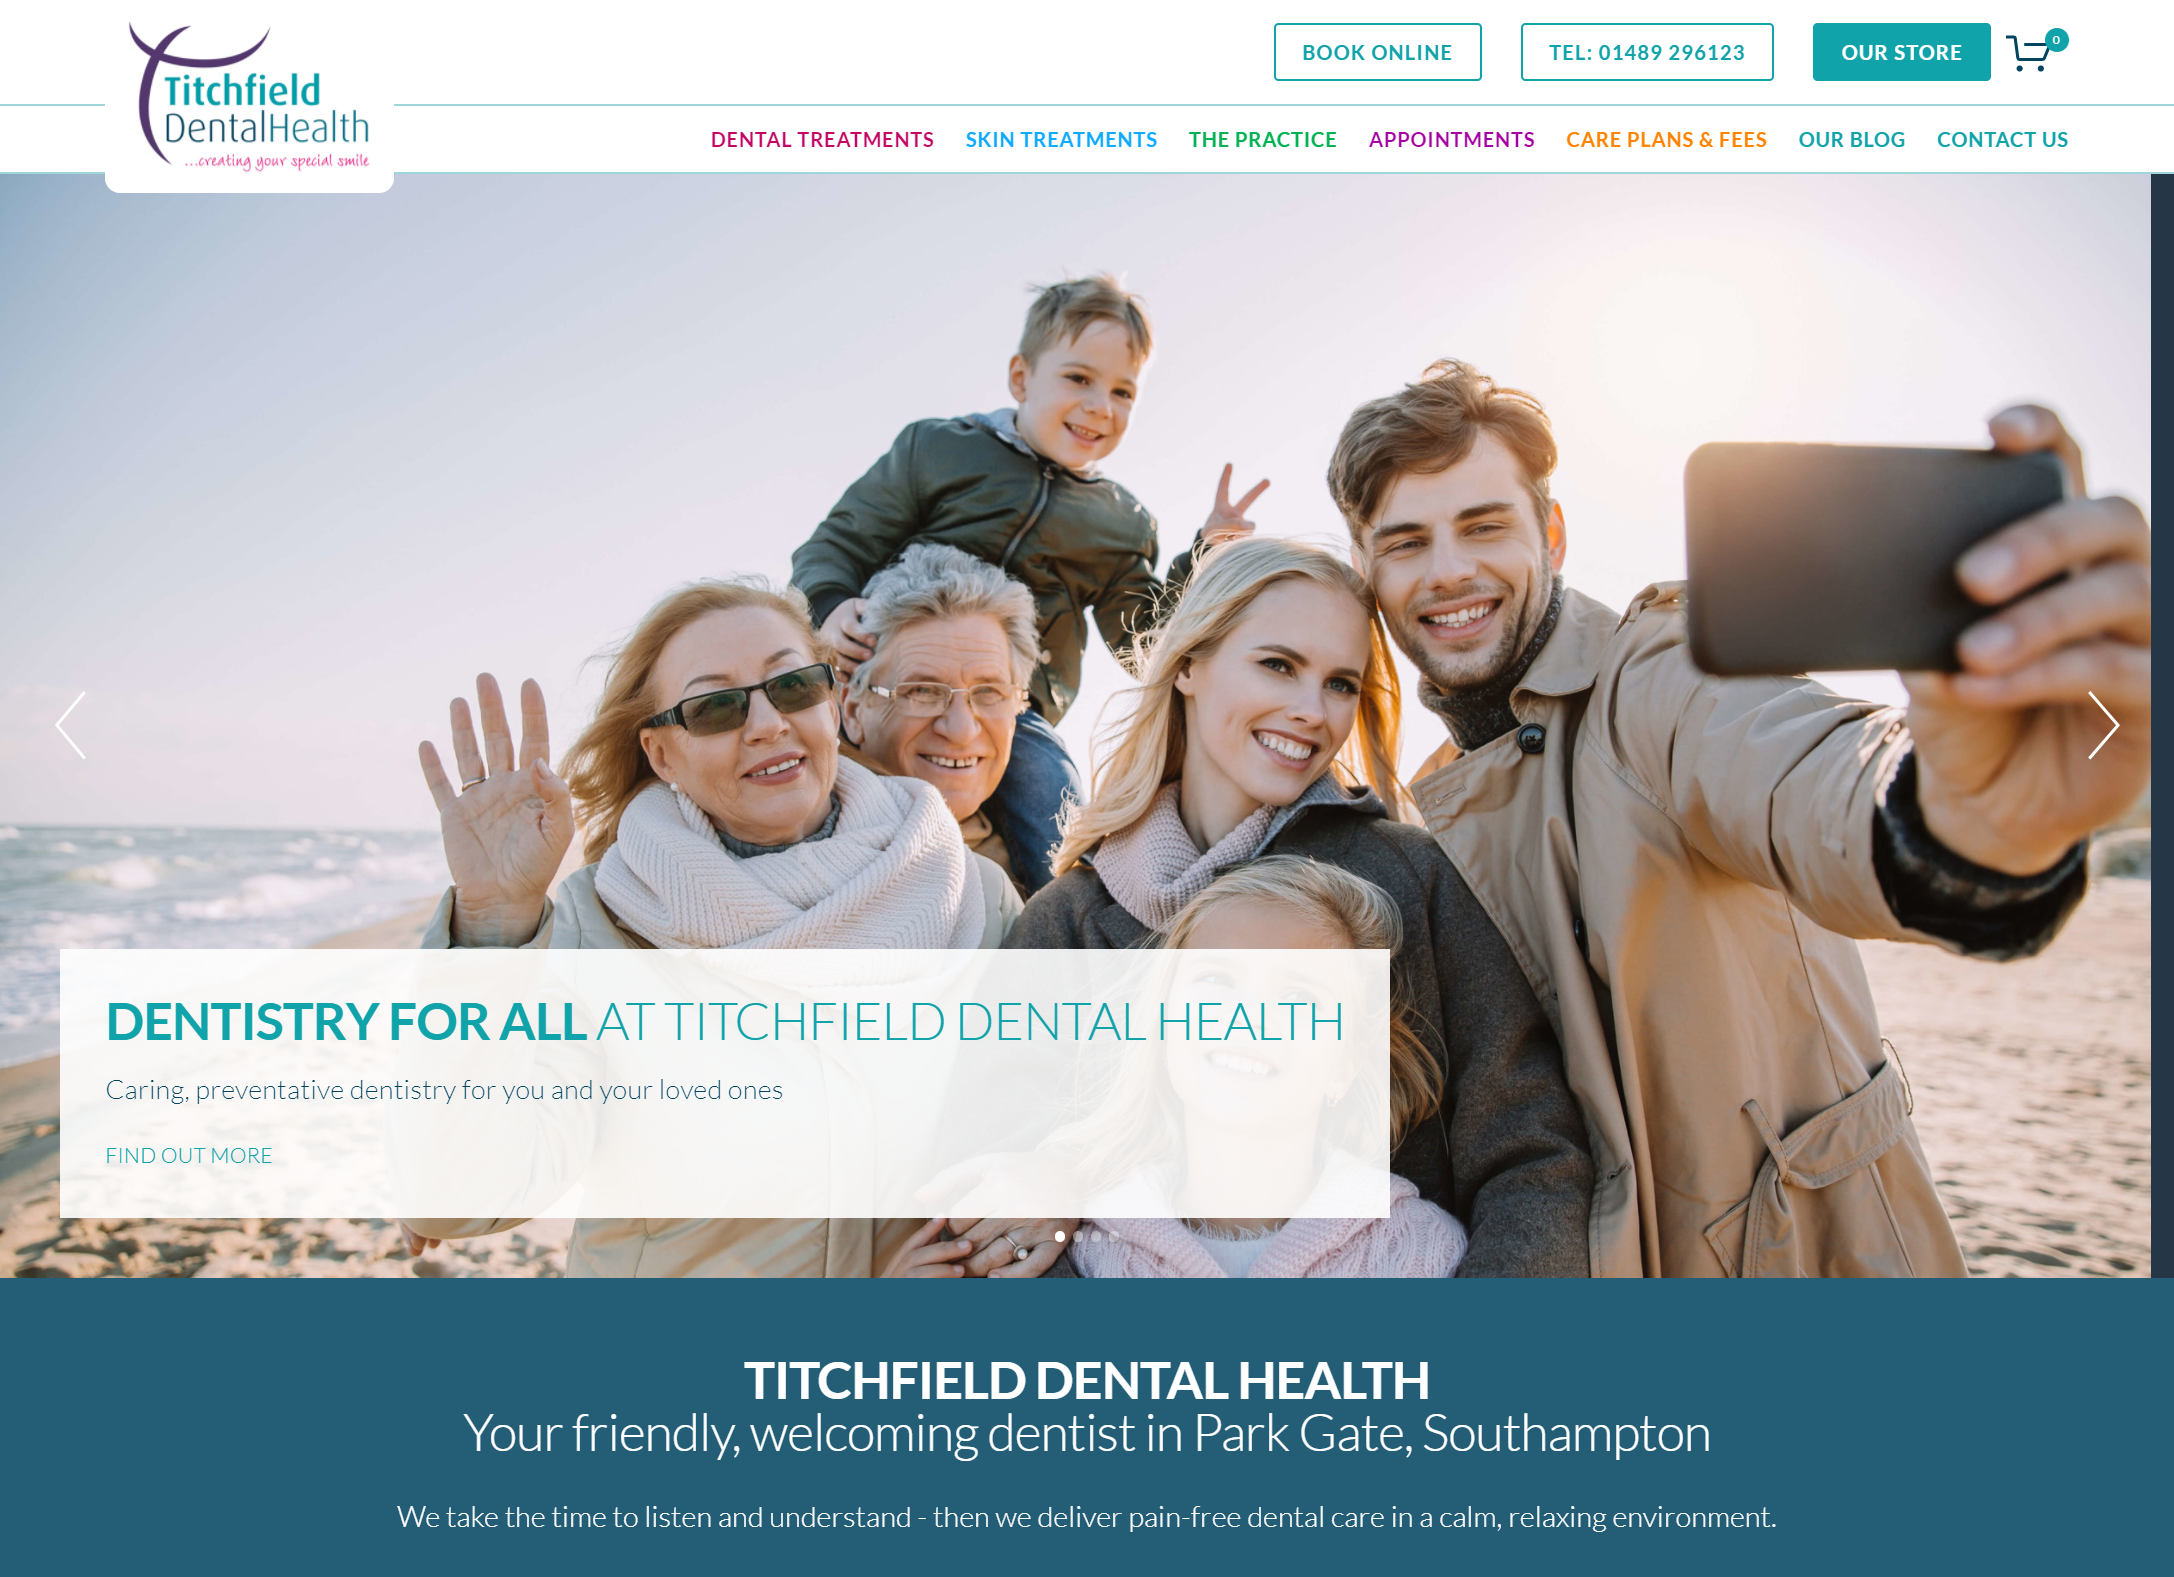 Titchfield Dental Health